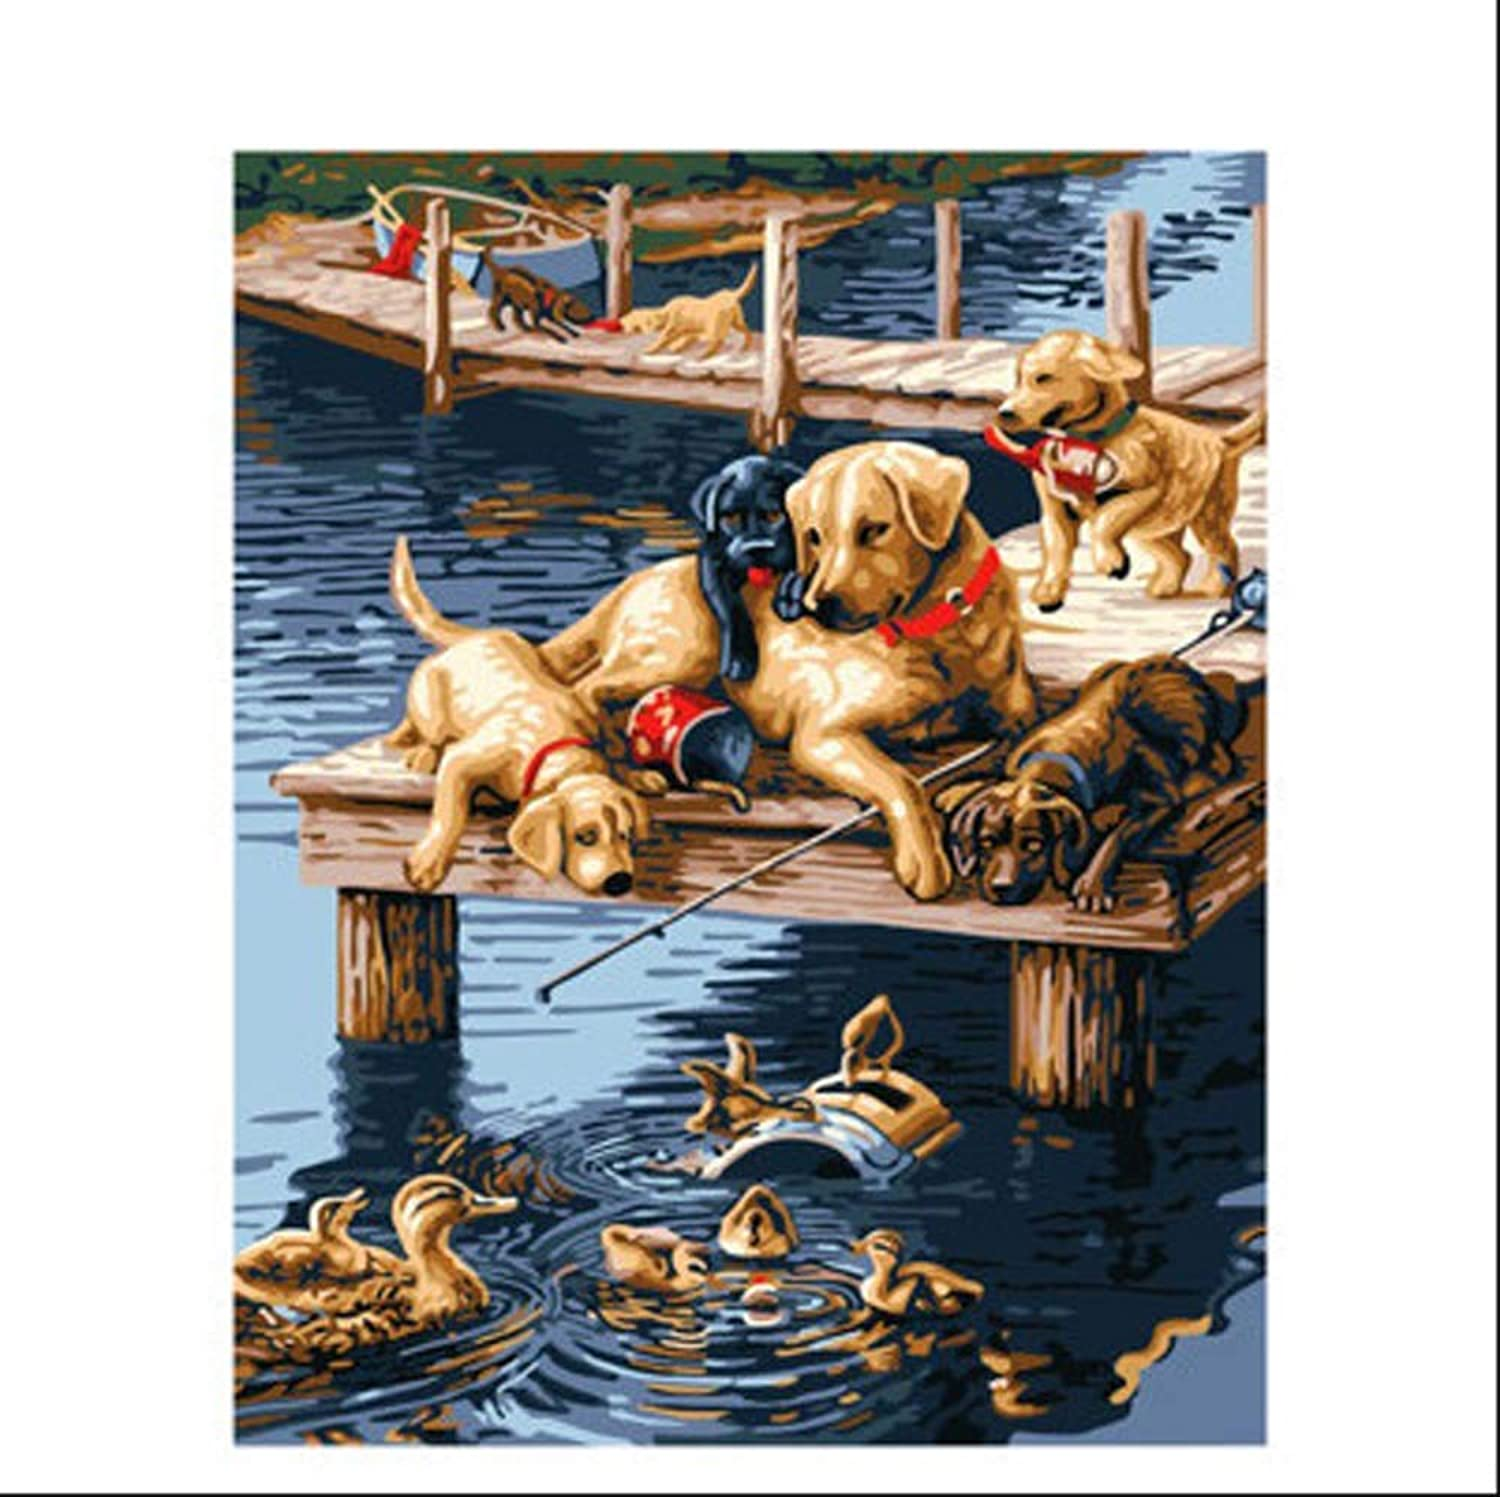 Tuwba Paint by Numbers Adult Kit Dogs and Ducks Animal Beginner Acrylic On Canvas,Framed 40X50Cm